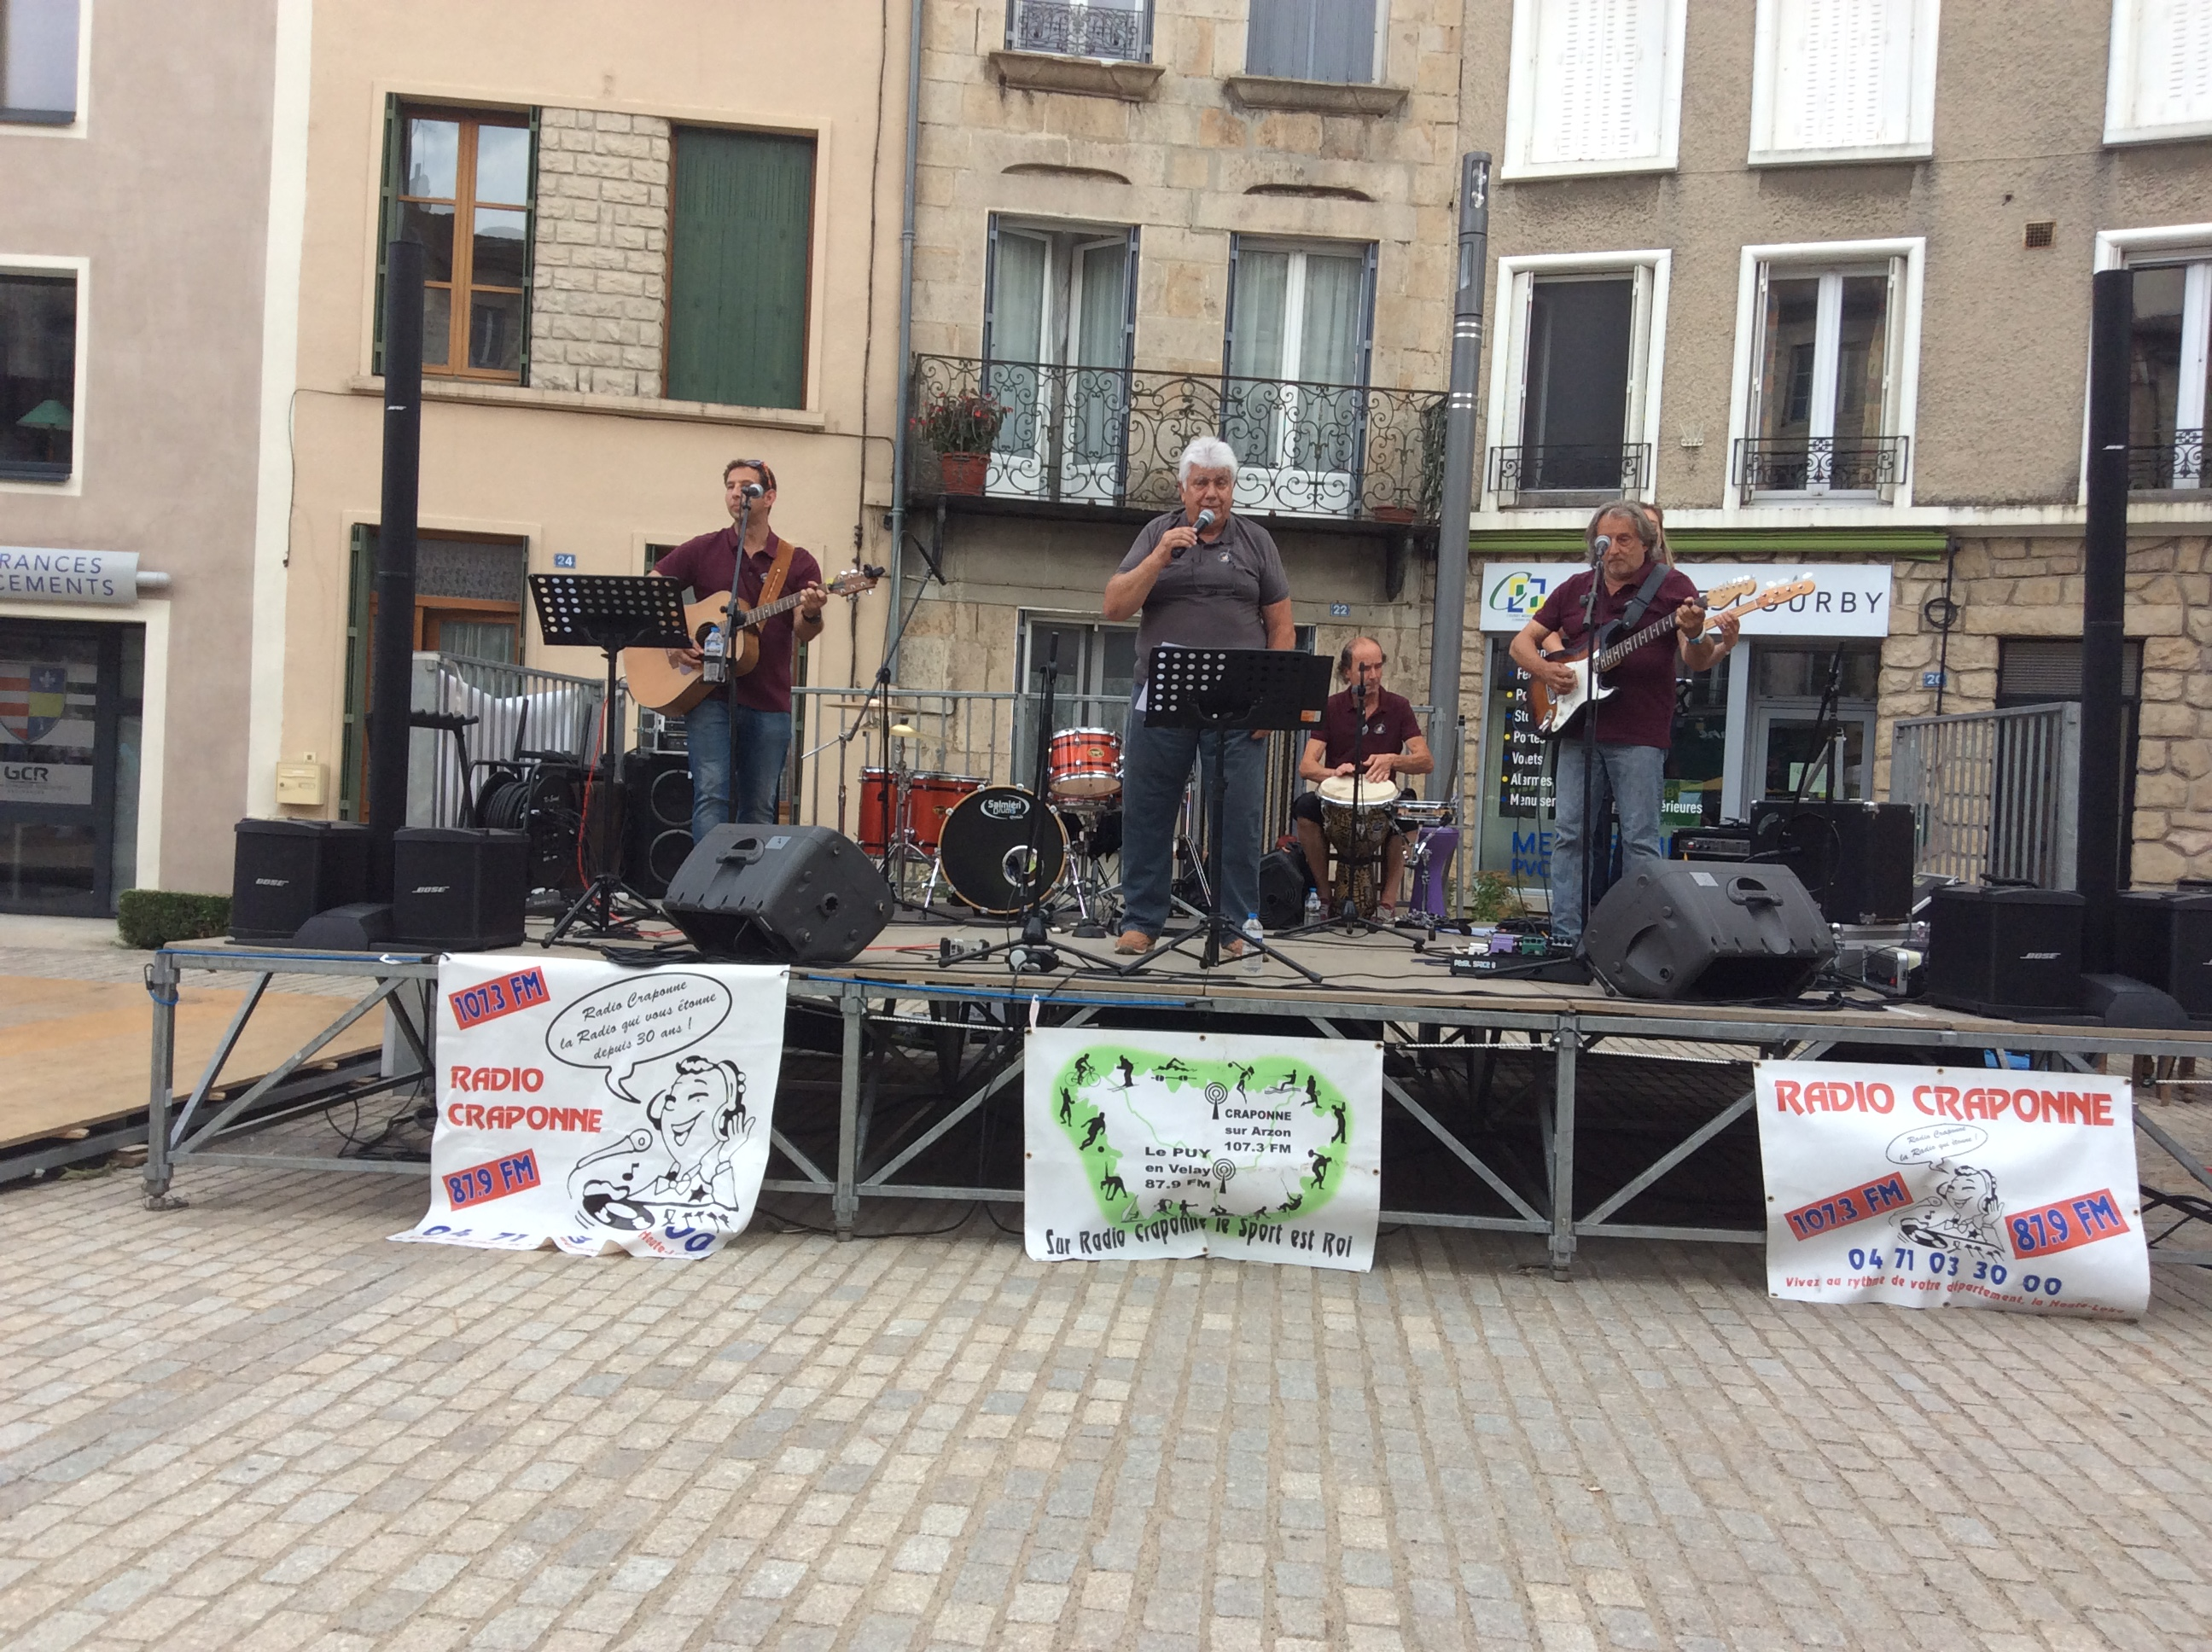 jean pierre et son skiffle group